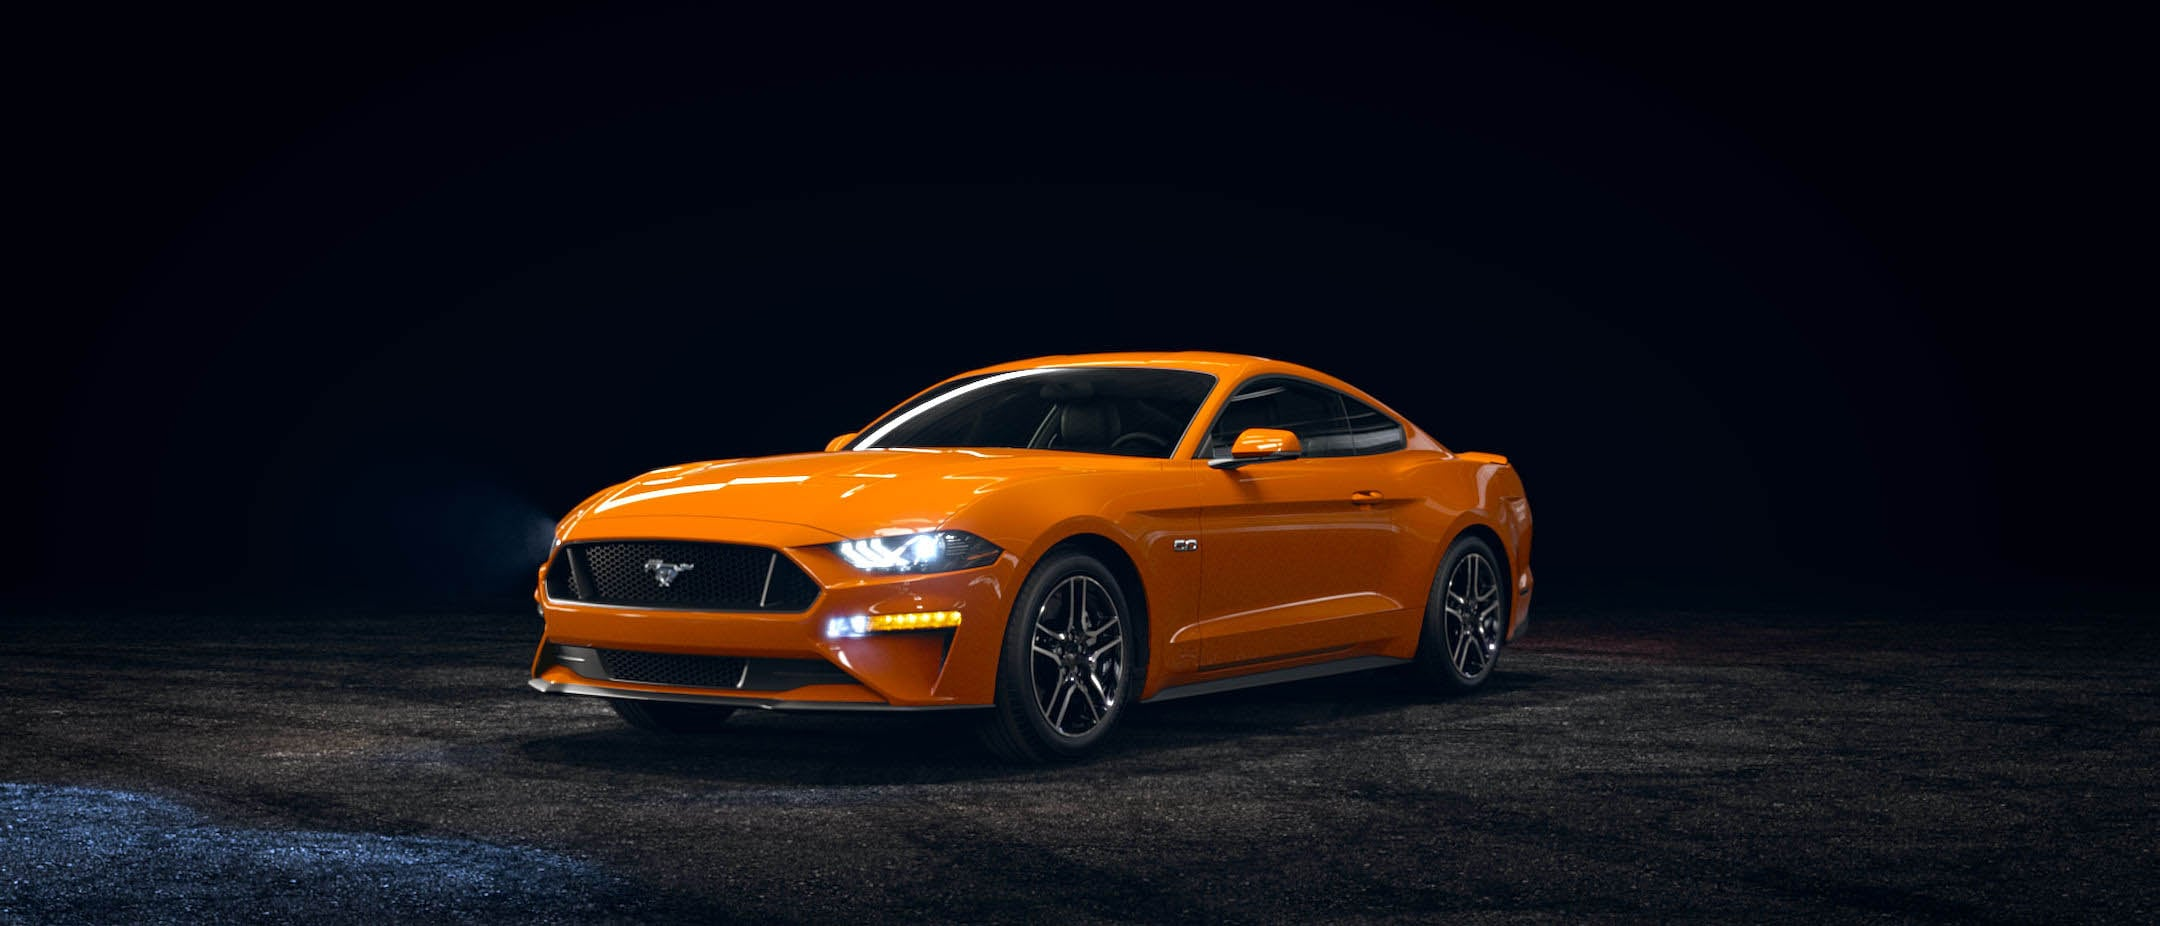 By clicking sign up, you agree to the terms of use. 2021 Ford Mustang Sports Car Photos Videos Colors 360 Views